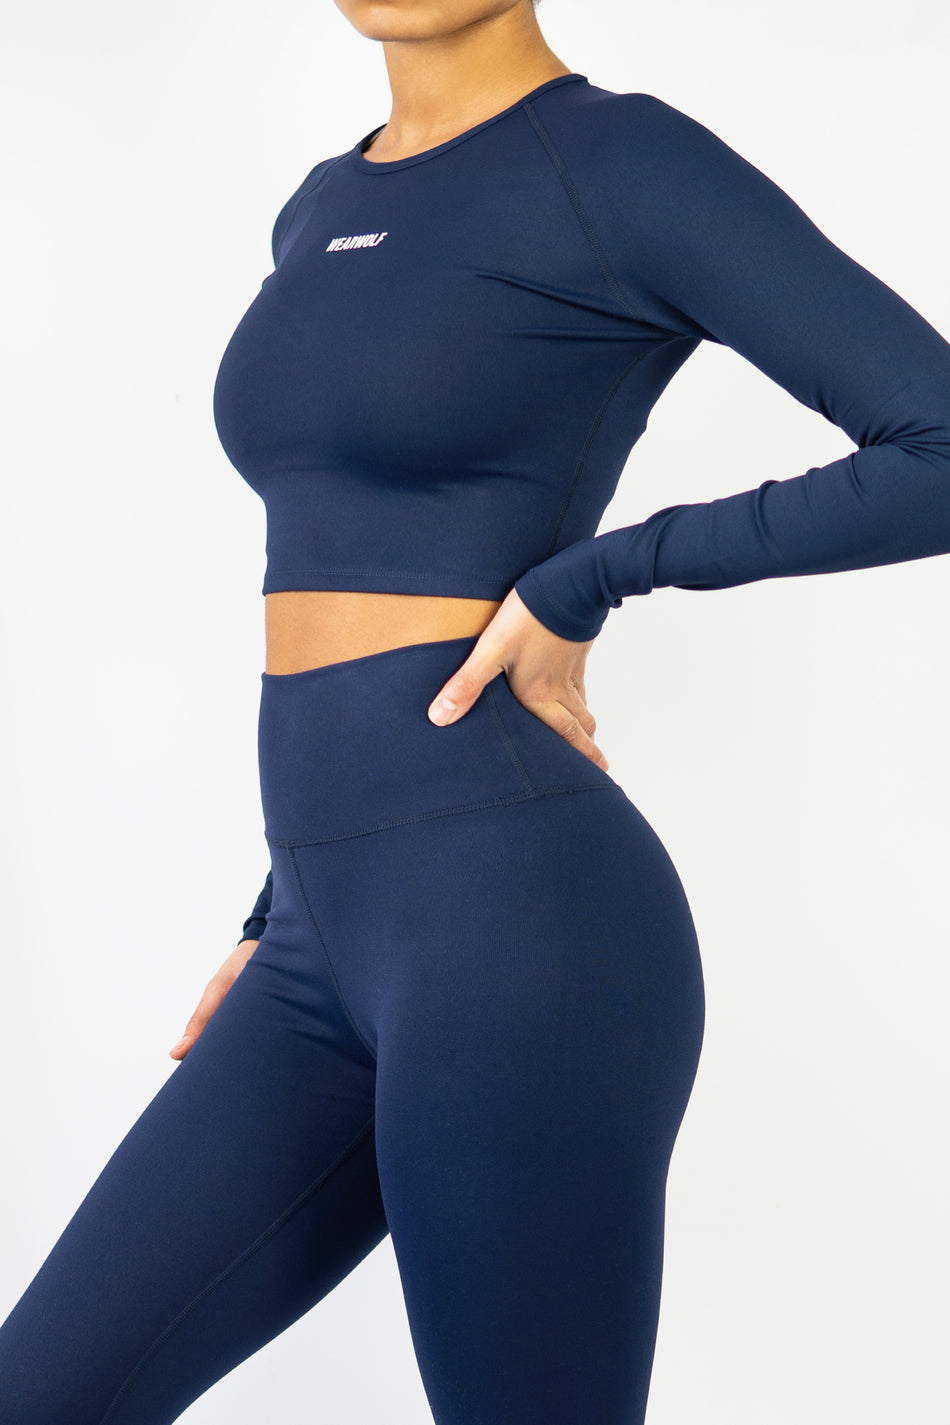 Form Long Sleeve Crop - Navy Blue - WearWolf Clothing UK